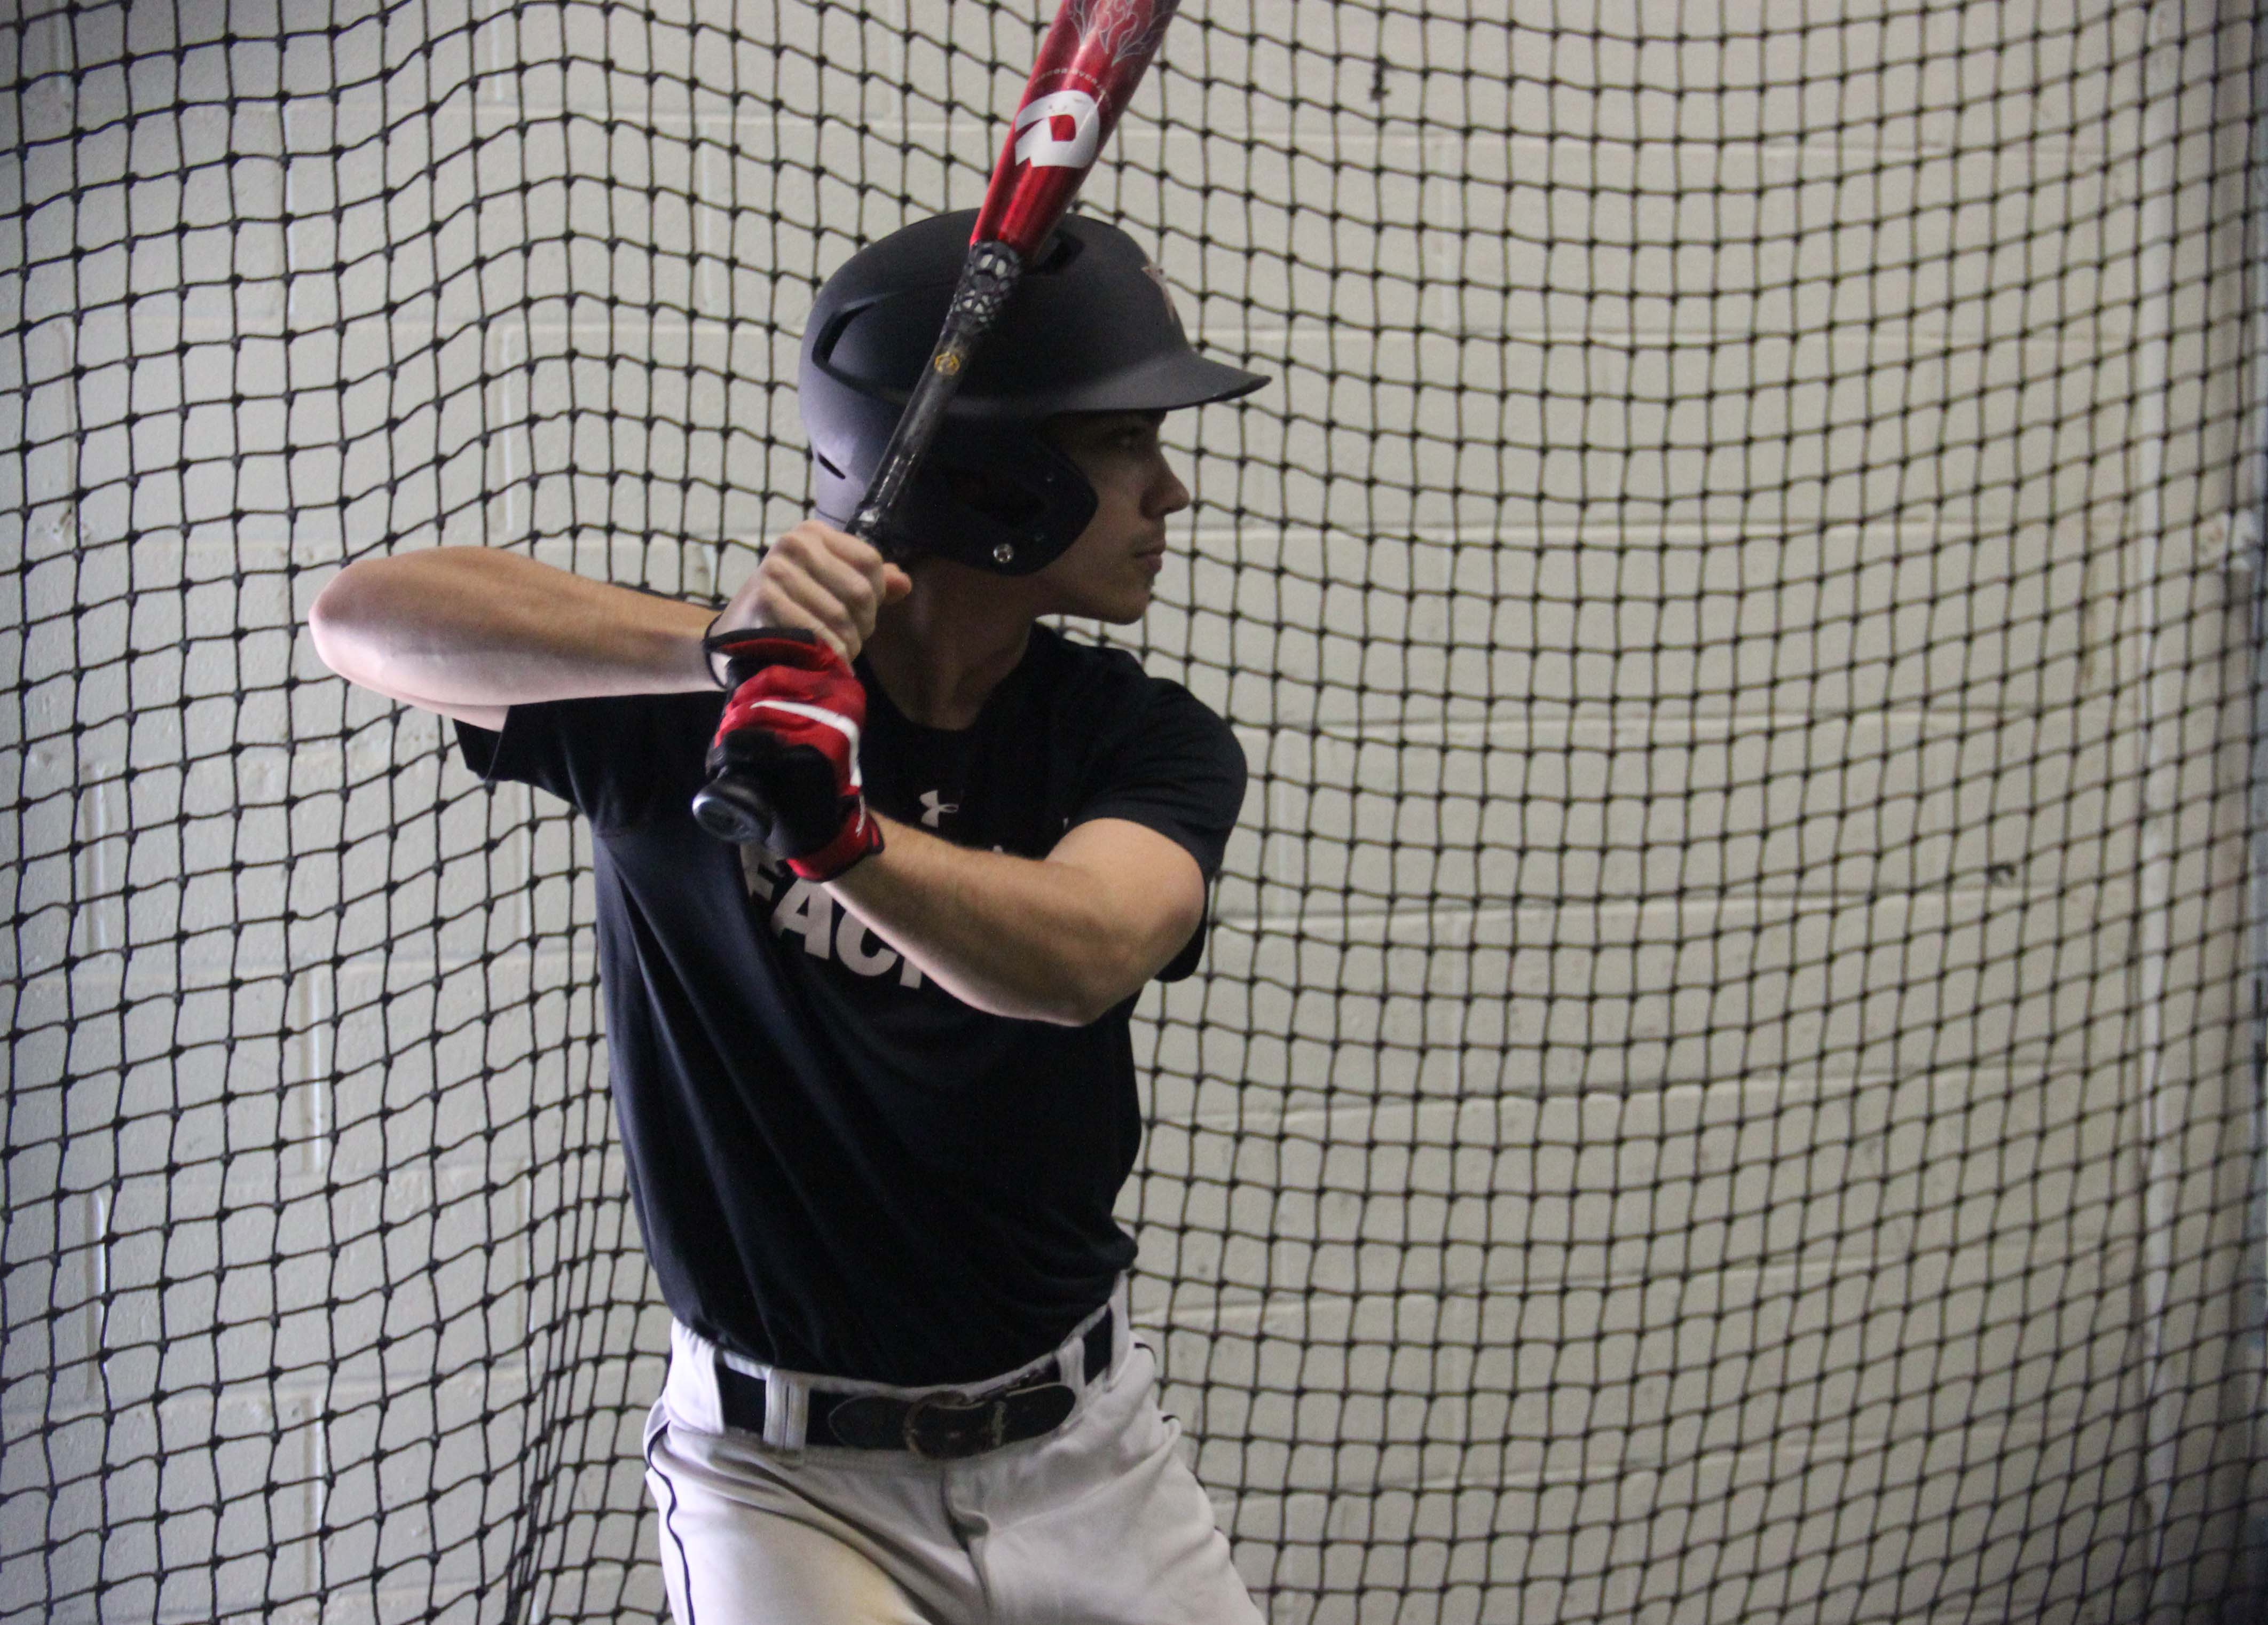 Coppell High School senior Tyler Lozes awaits a pitch in the batting cage at the CHS batting cages on Feb. 21 during fourth period. Lozes, an outfielder, for the Cowboys, is on the Varsity Boy's baseball team.